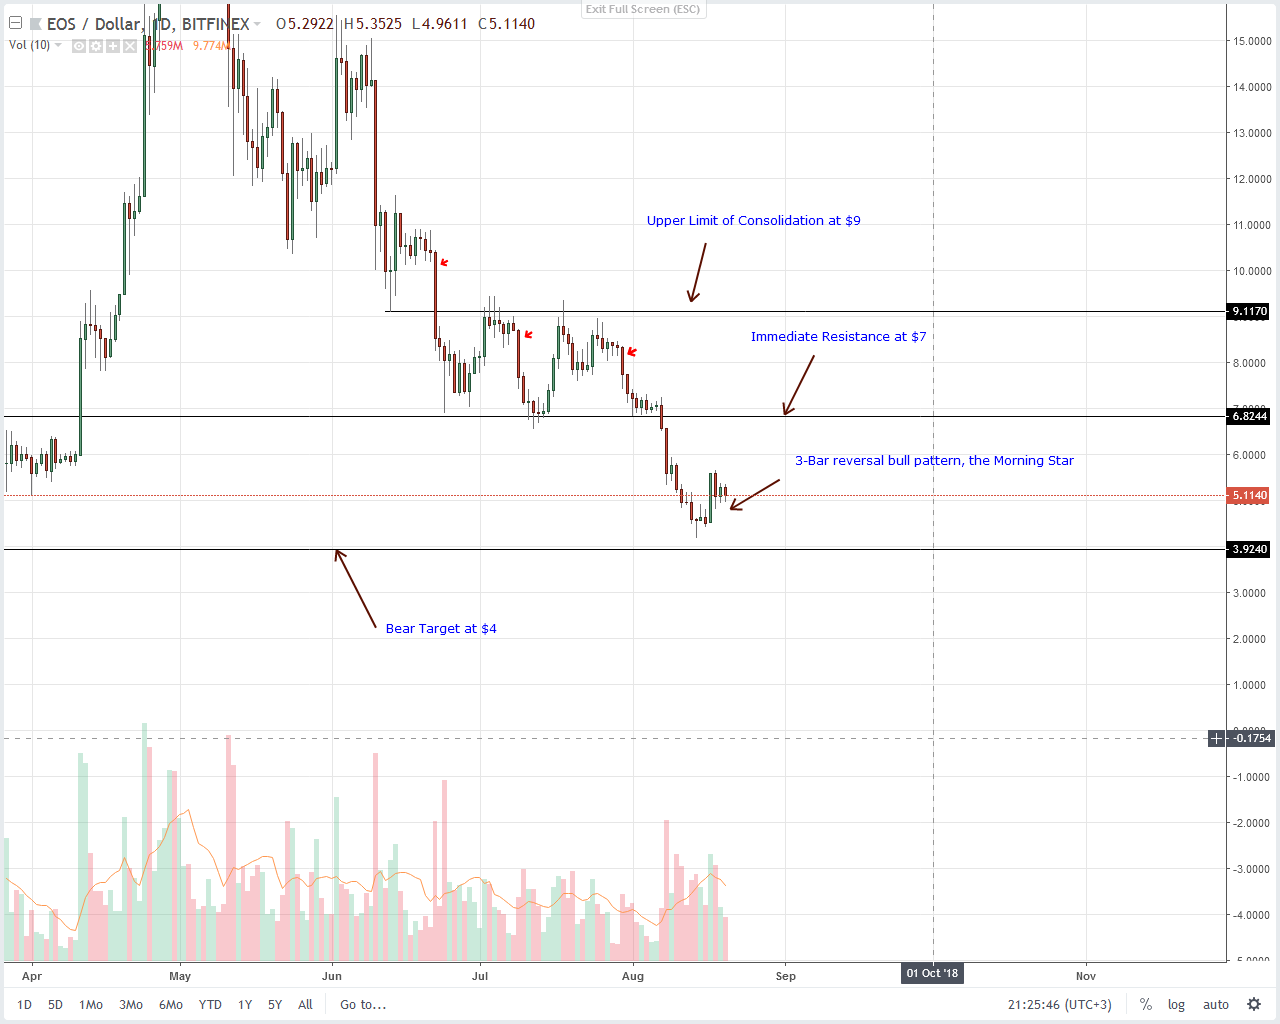 EOS Daily Chart Aug 21